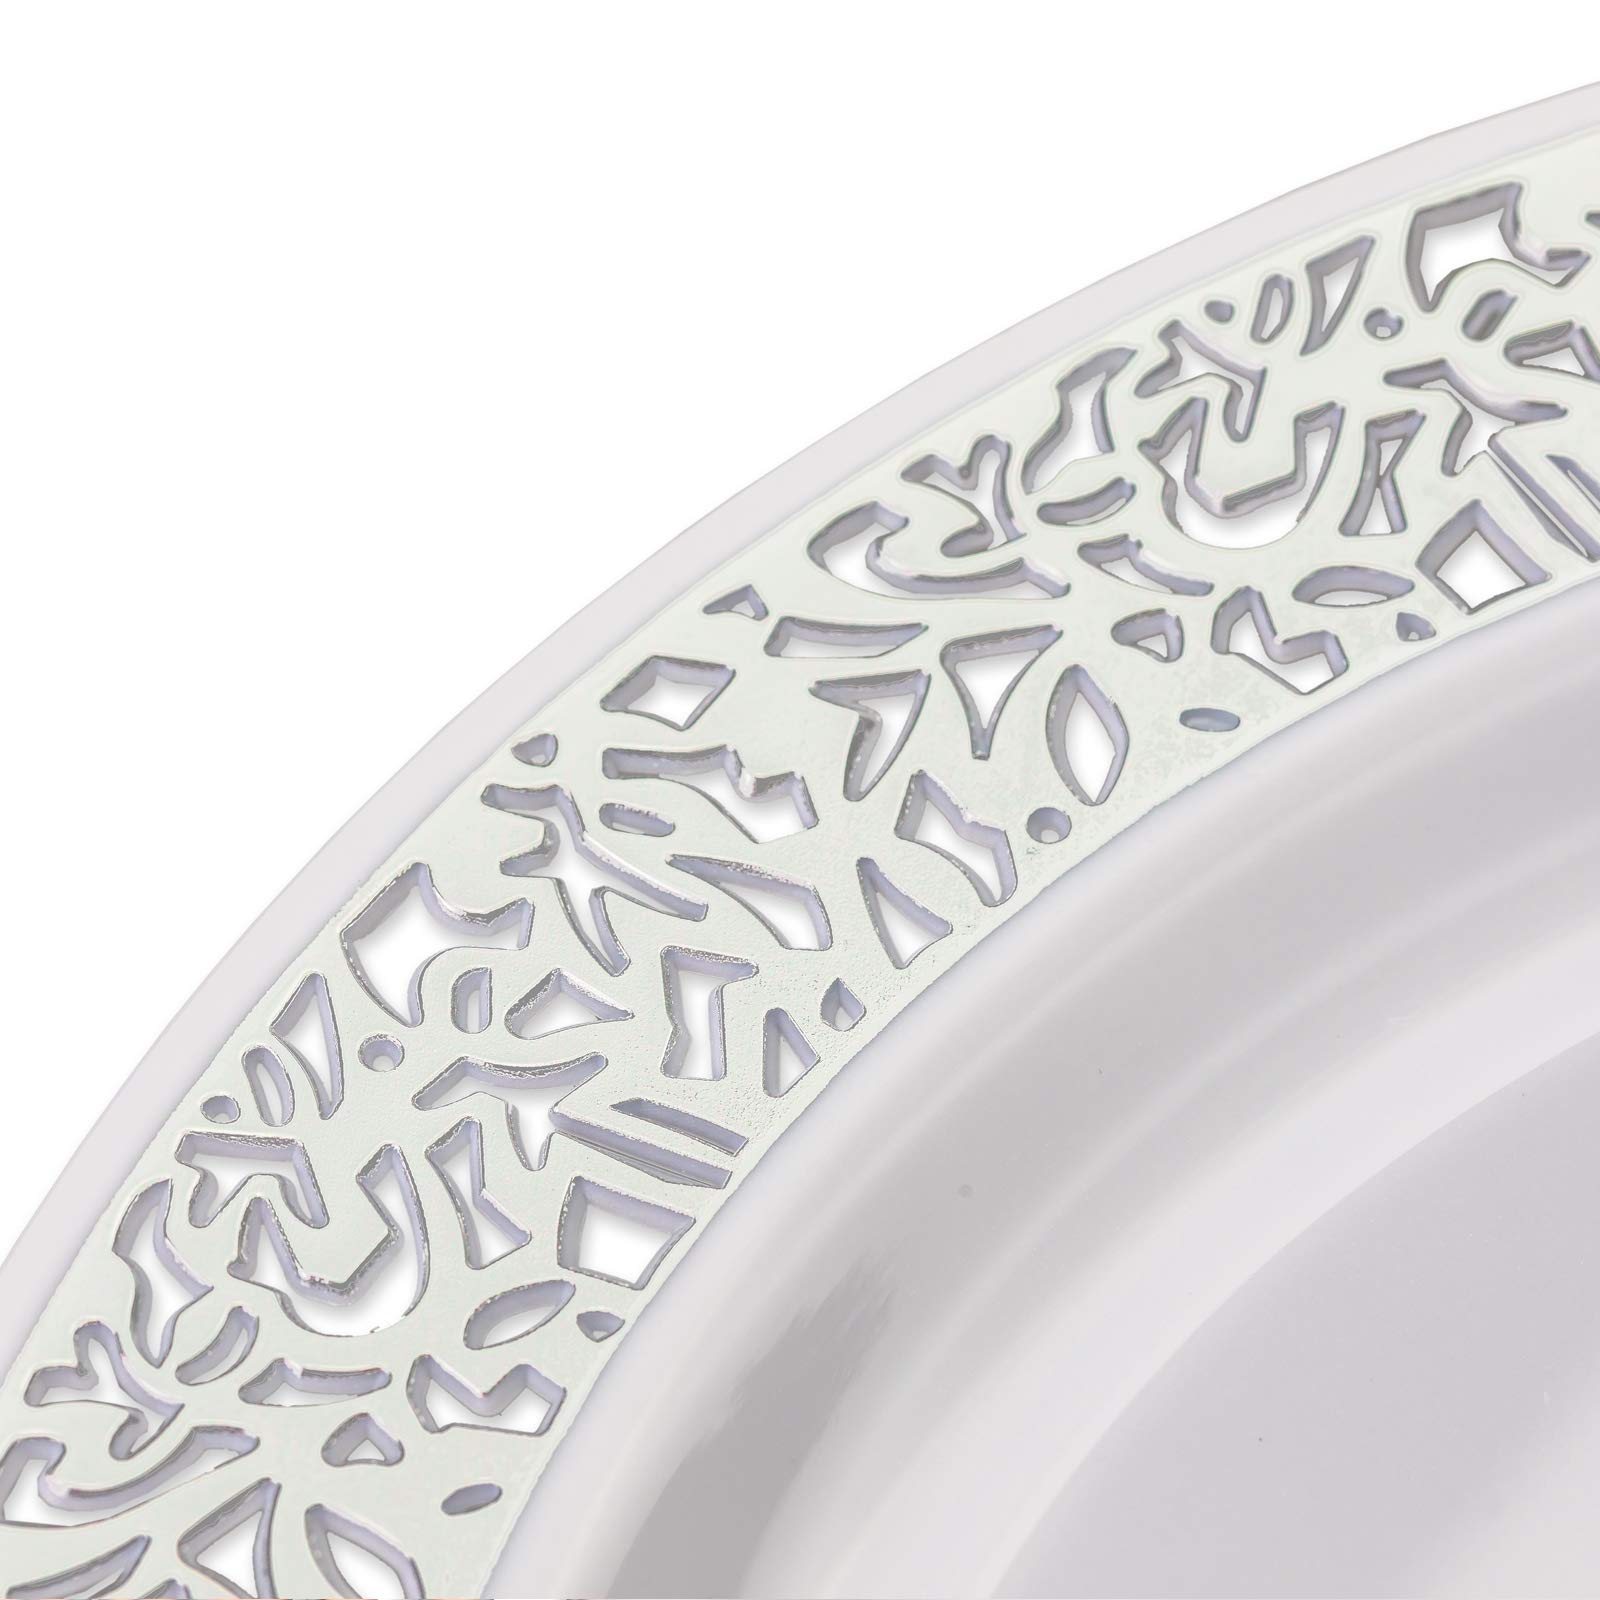 Your Gatherings - 606pc/100 Guest Silver Premium Disposable Wedding Dinnerware Set | 100 Dinner Plates, 100 Dessert Plates, 200 Forks, 100 Spoons, 100 Knives, (100 Guest Set, Silver) by Your Gatherings (Image #2)